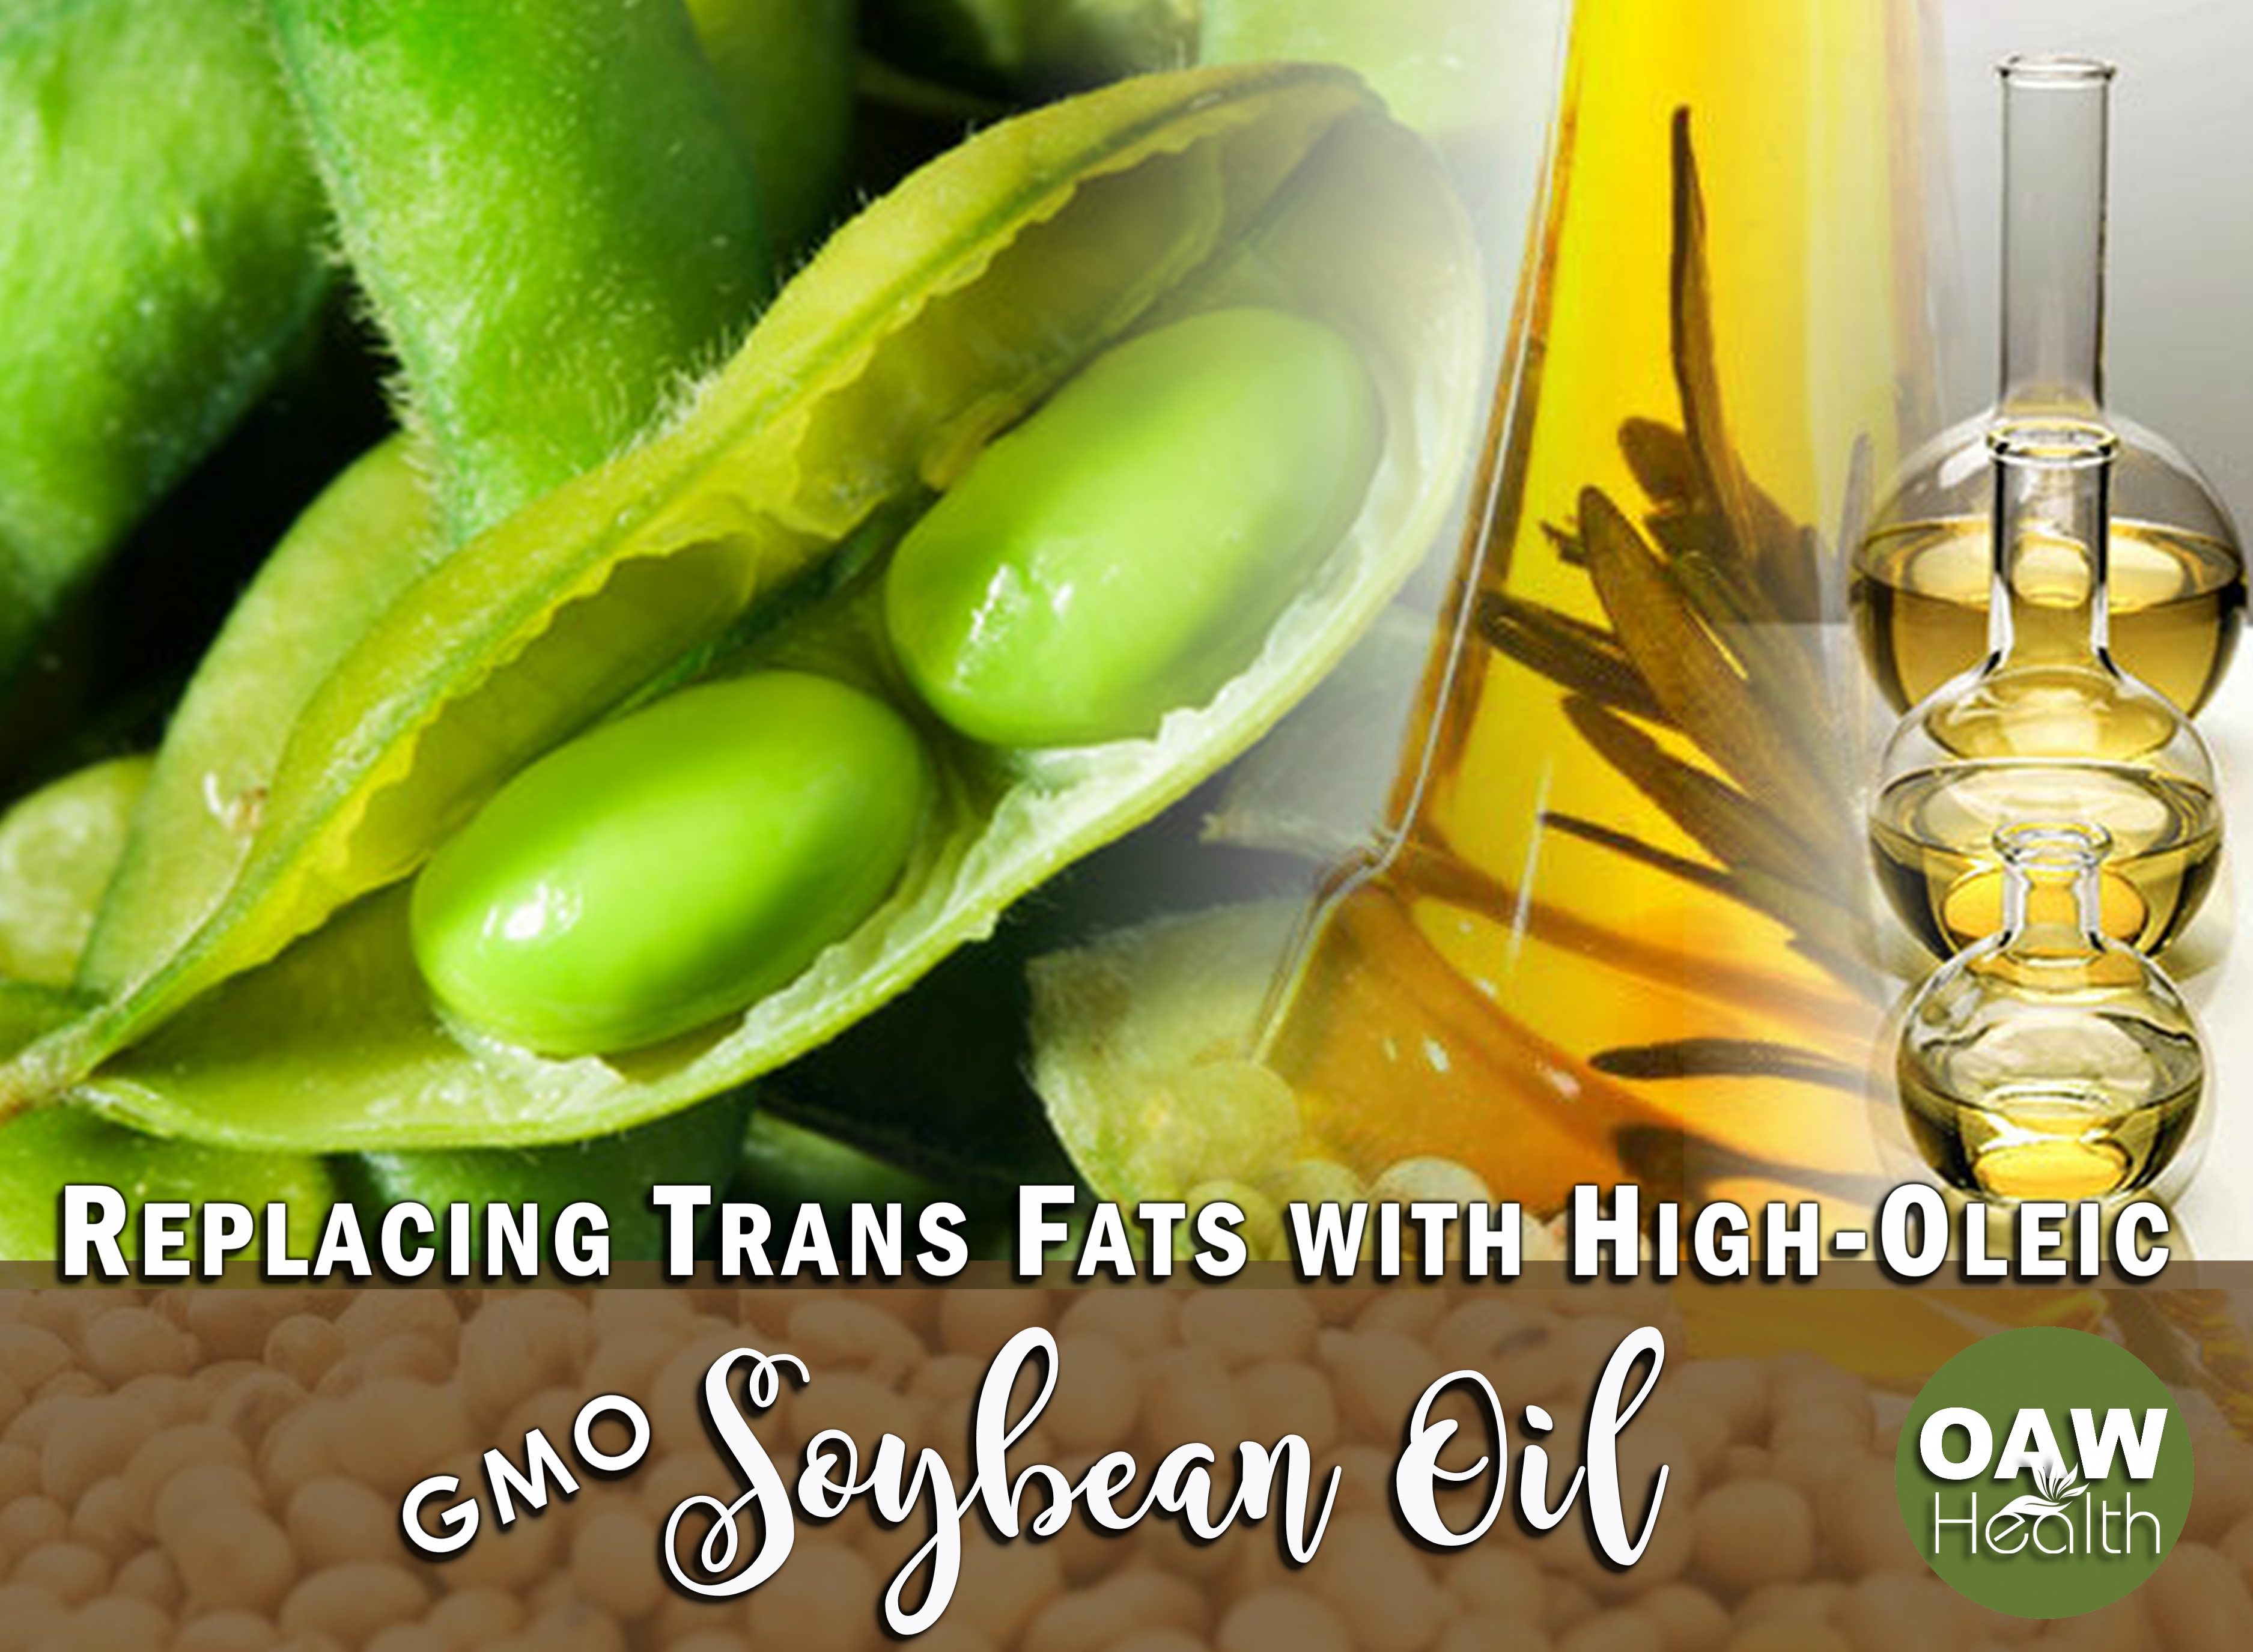 Replacing Trans Fats with High-Oleic GMO Soybean Oil